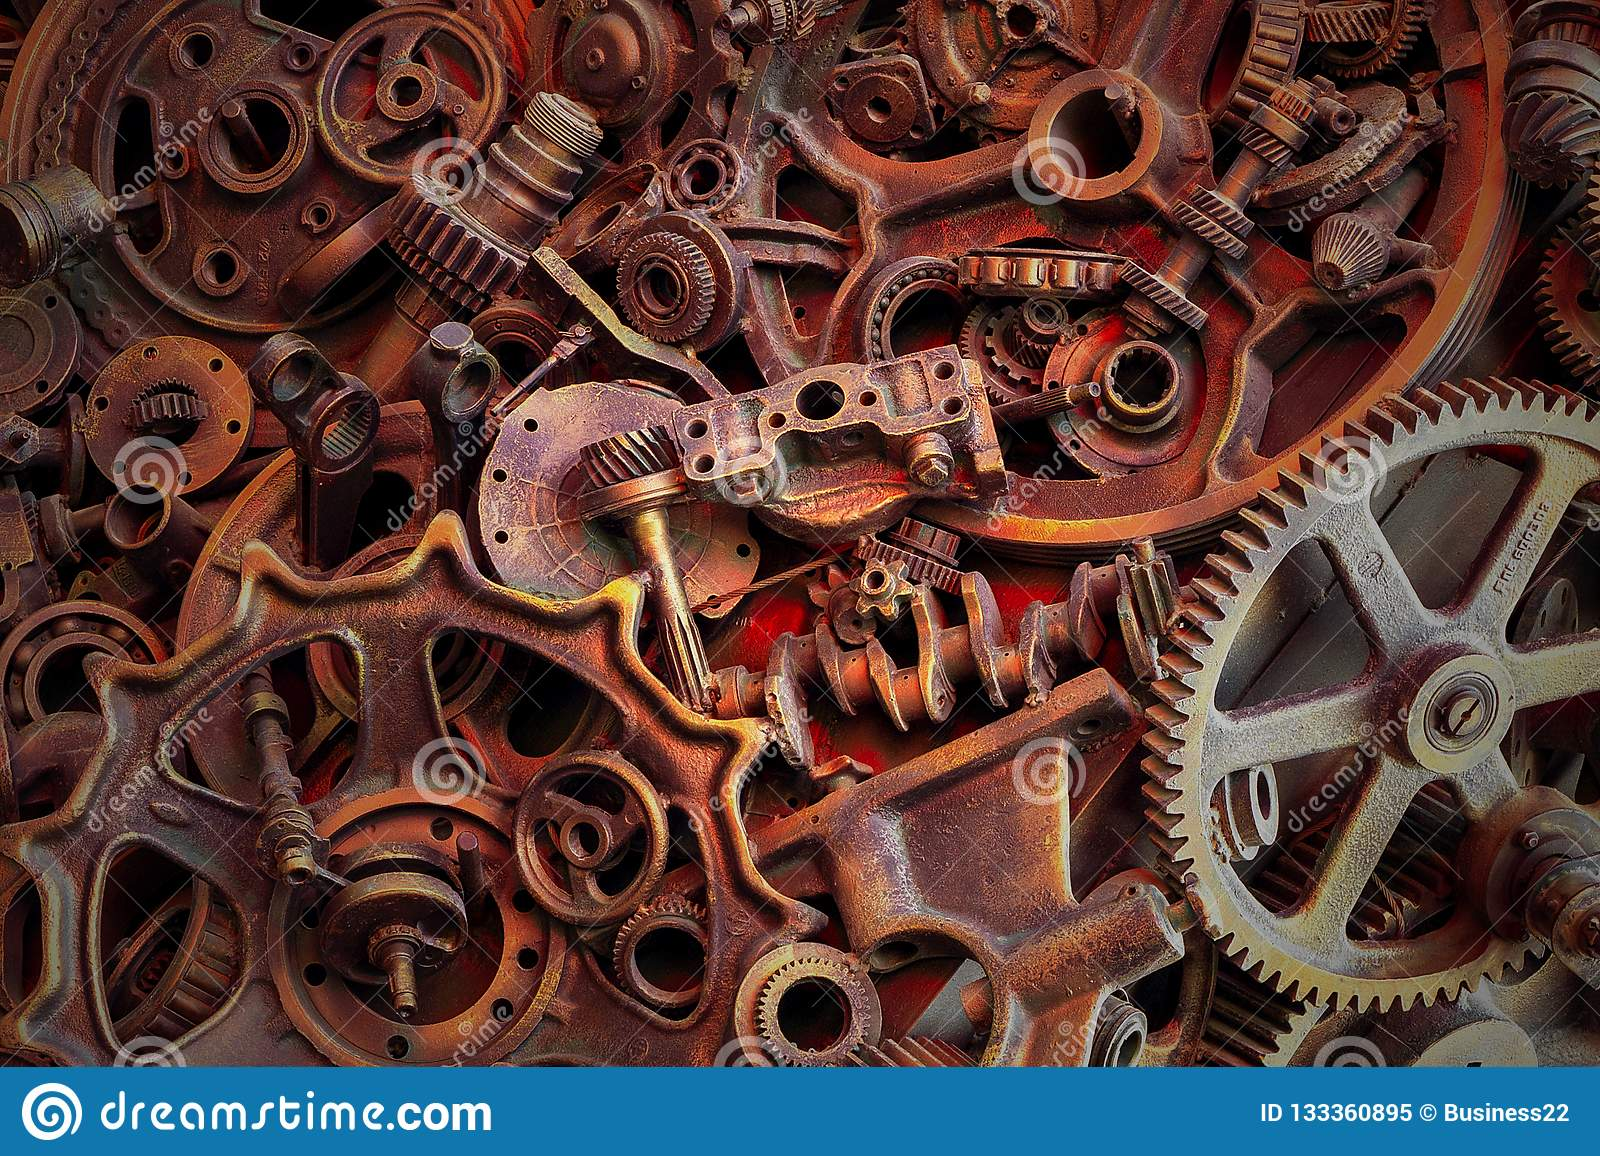 Steampunk background, machine and mechanical parts, large gears and chains from machines and tractors.